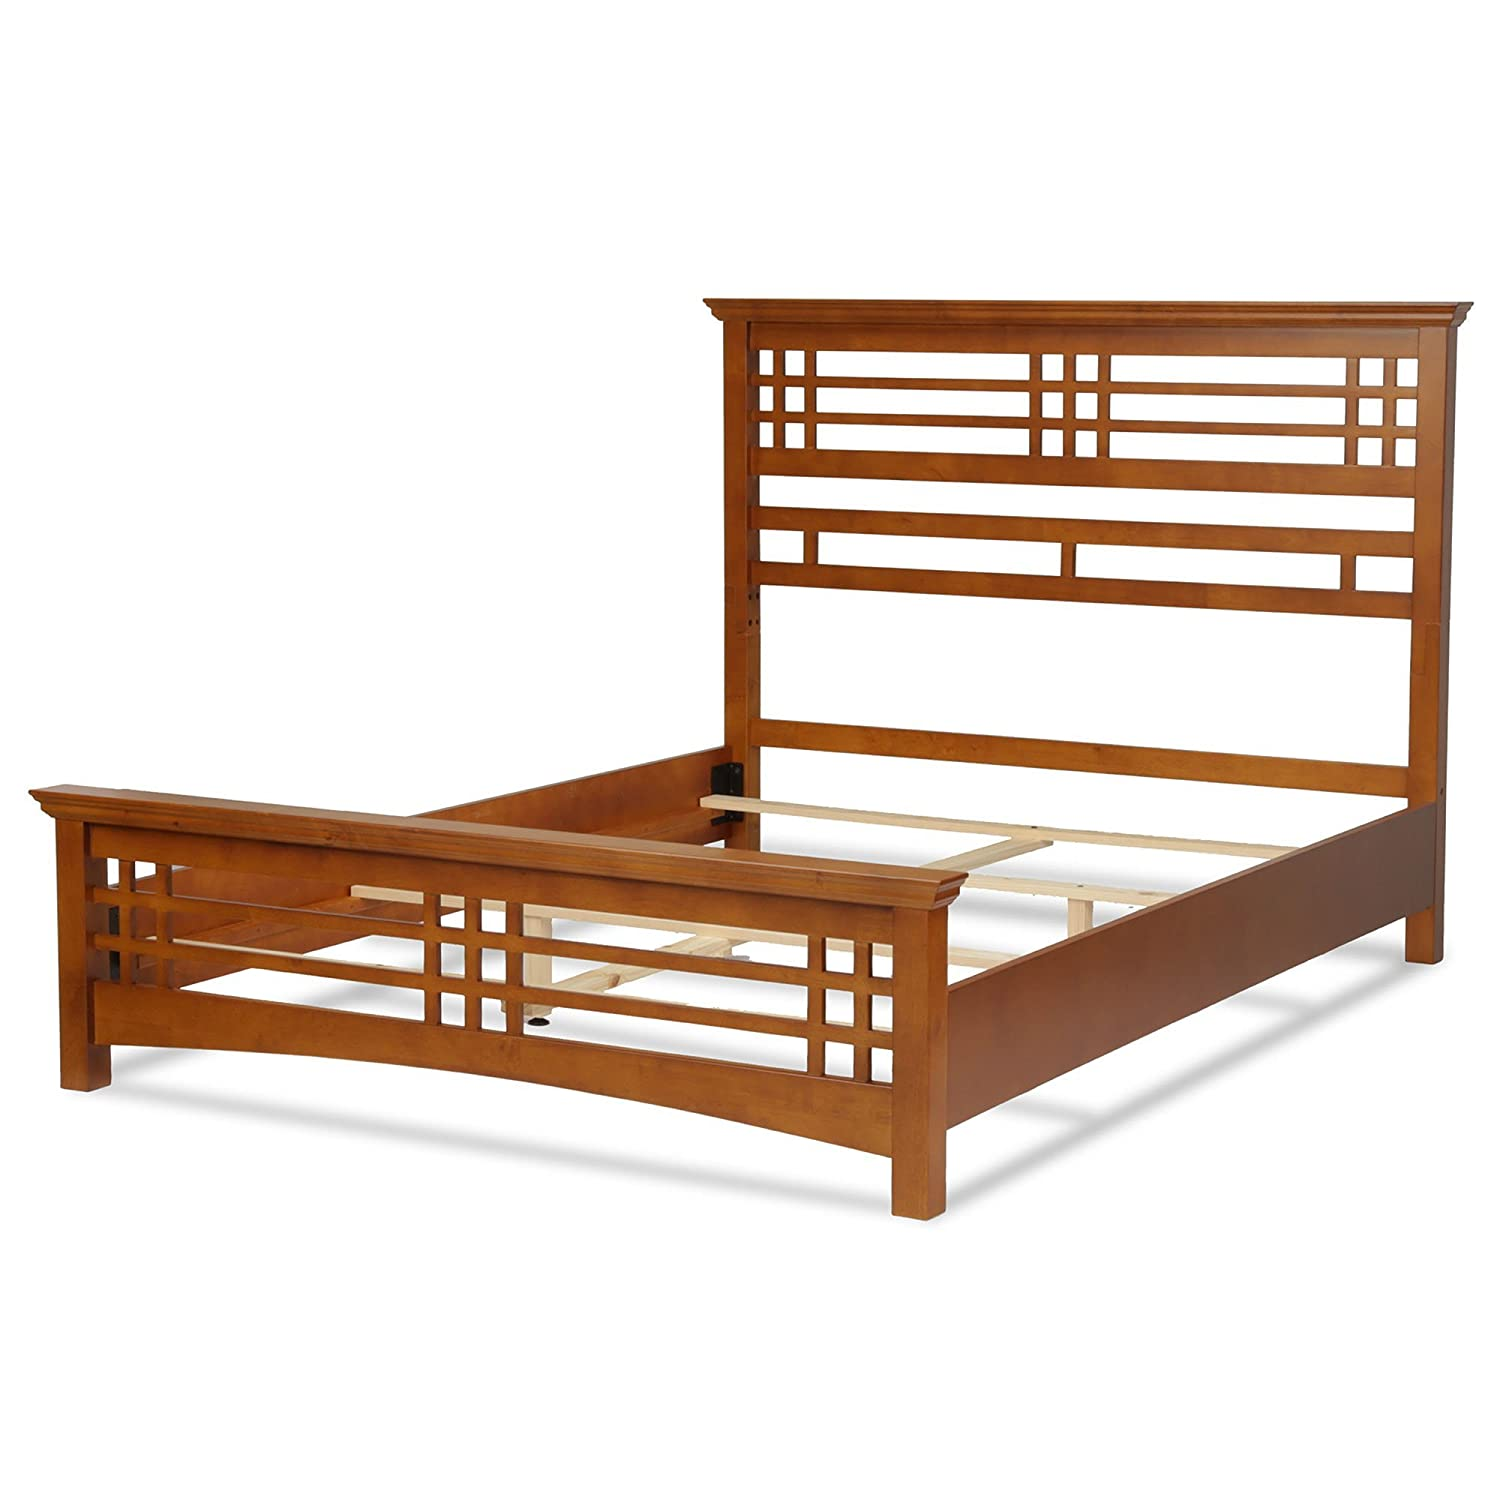 chairish fit and mission bed width frame aspect headboard queen style height handcrafted footboard amish product